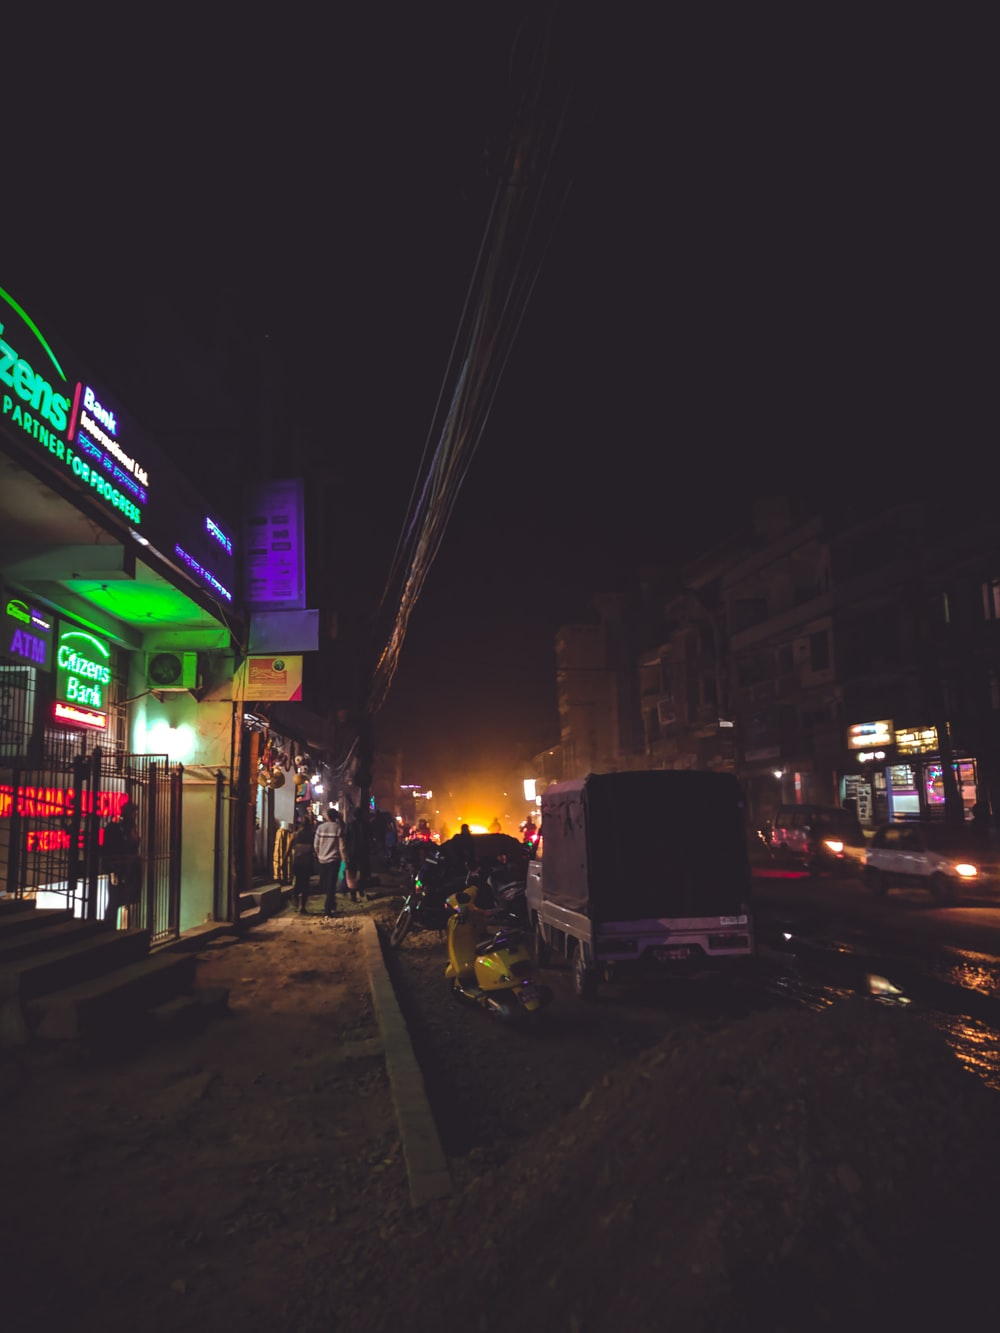 green and purple-lighted establishment at night